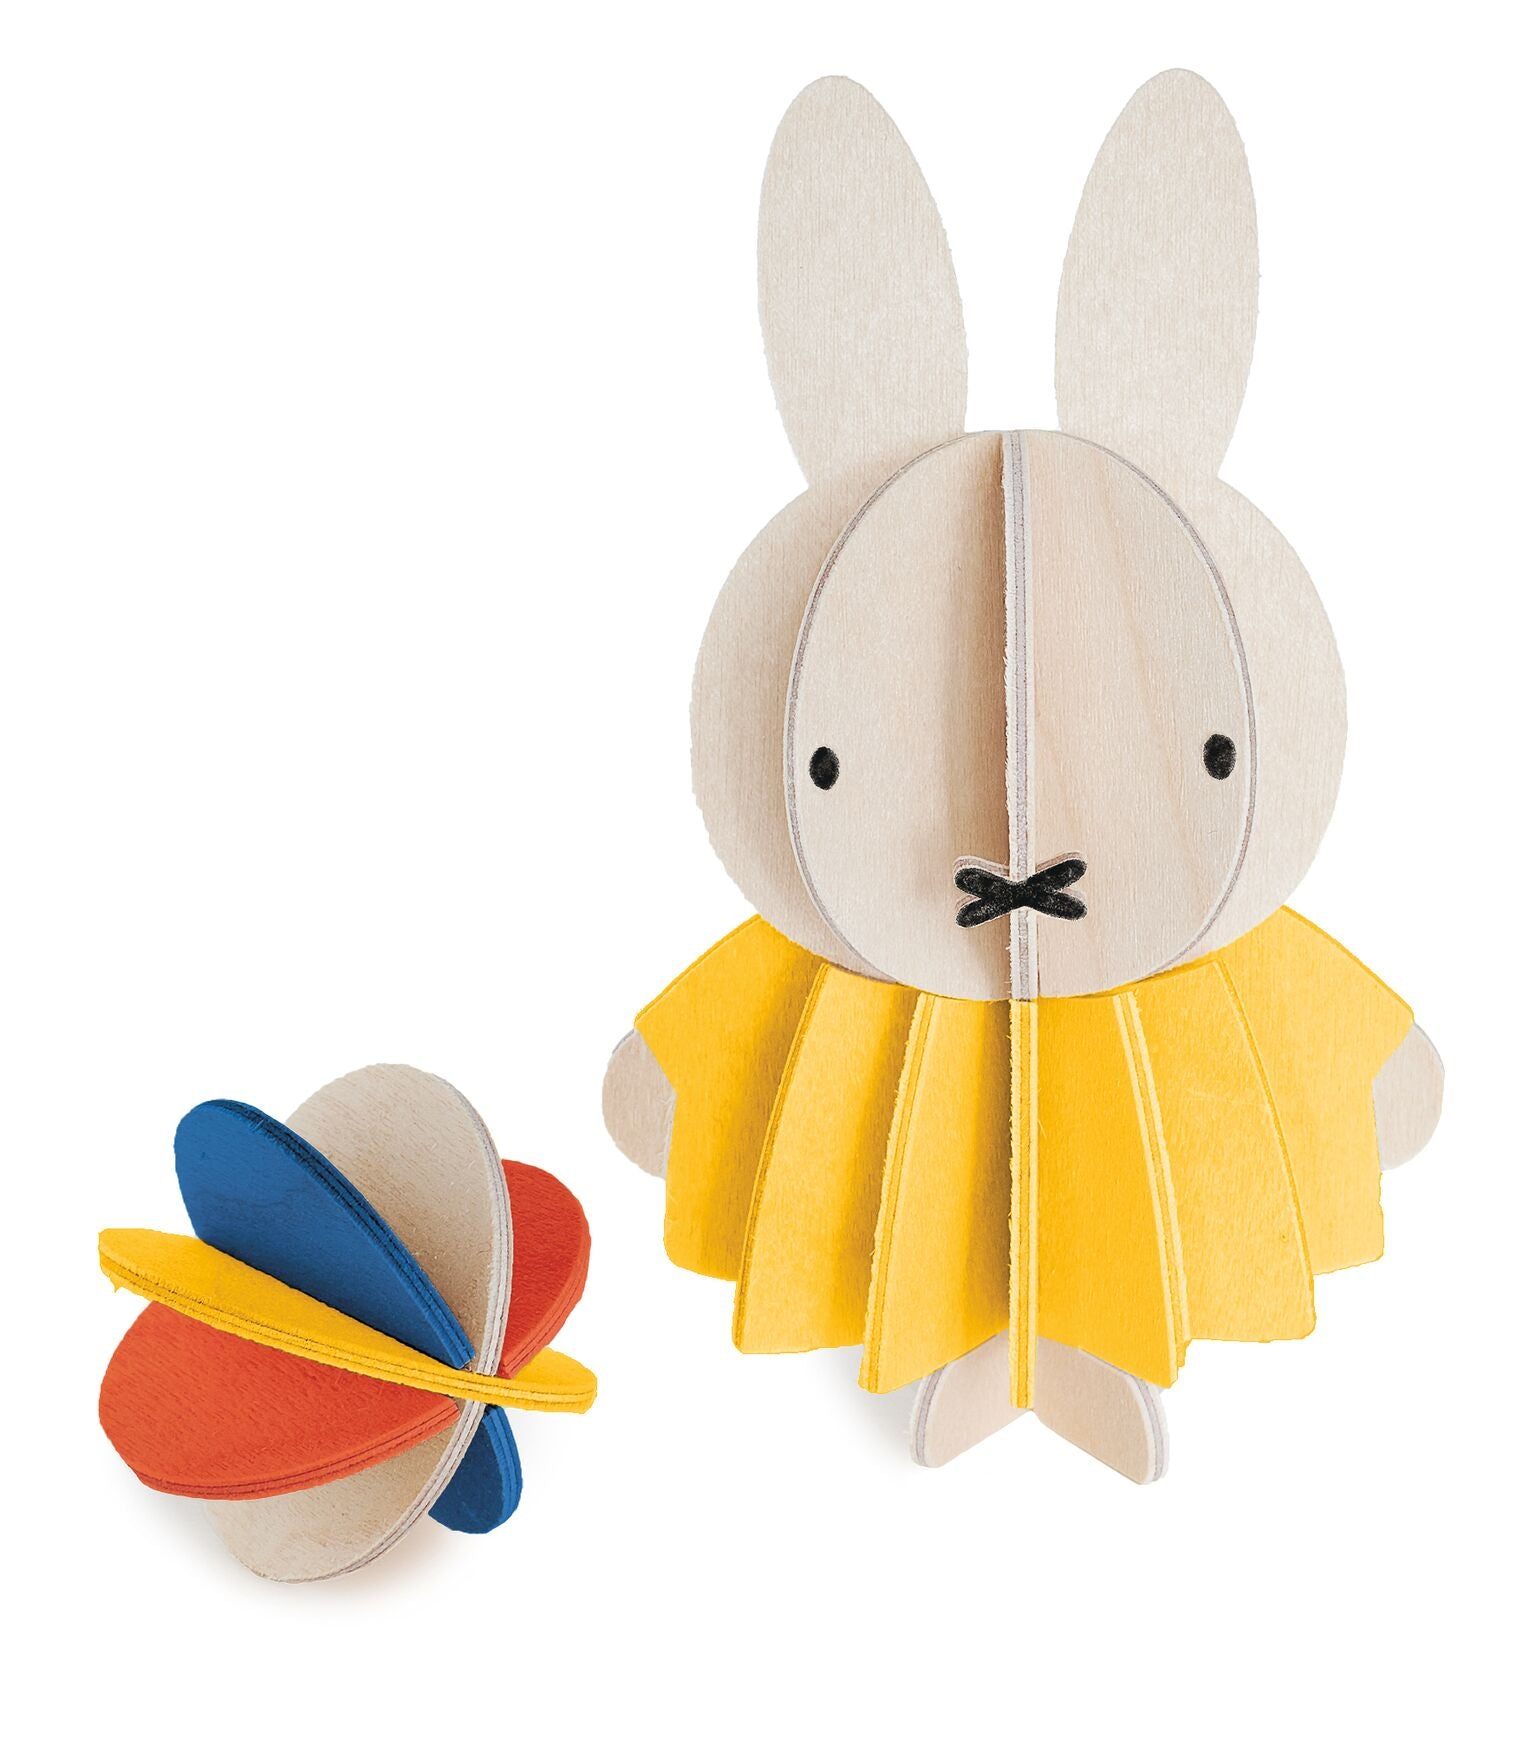 Miffy & Ball by Lovi, M size card